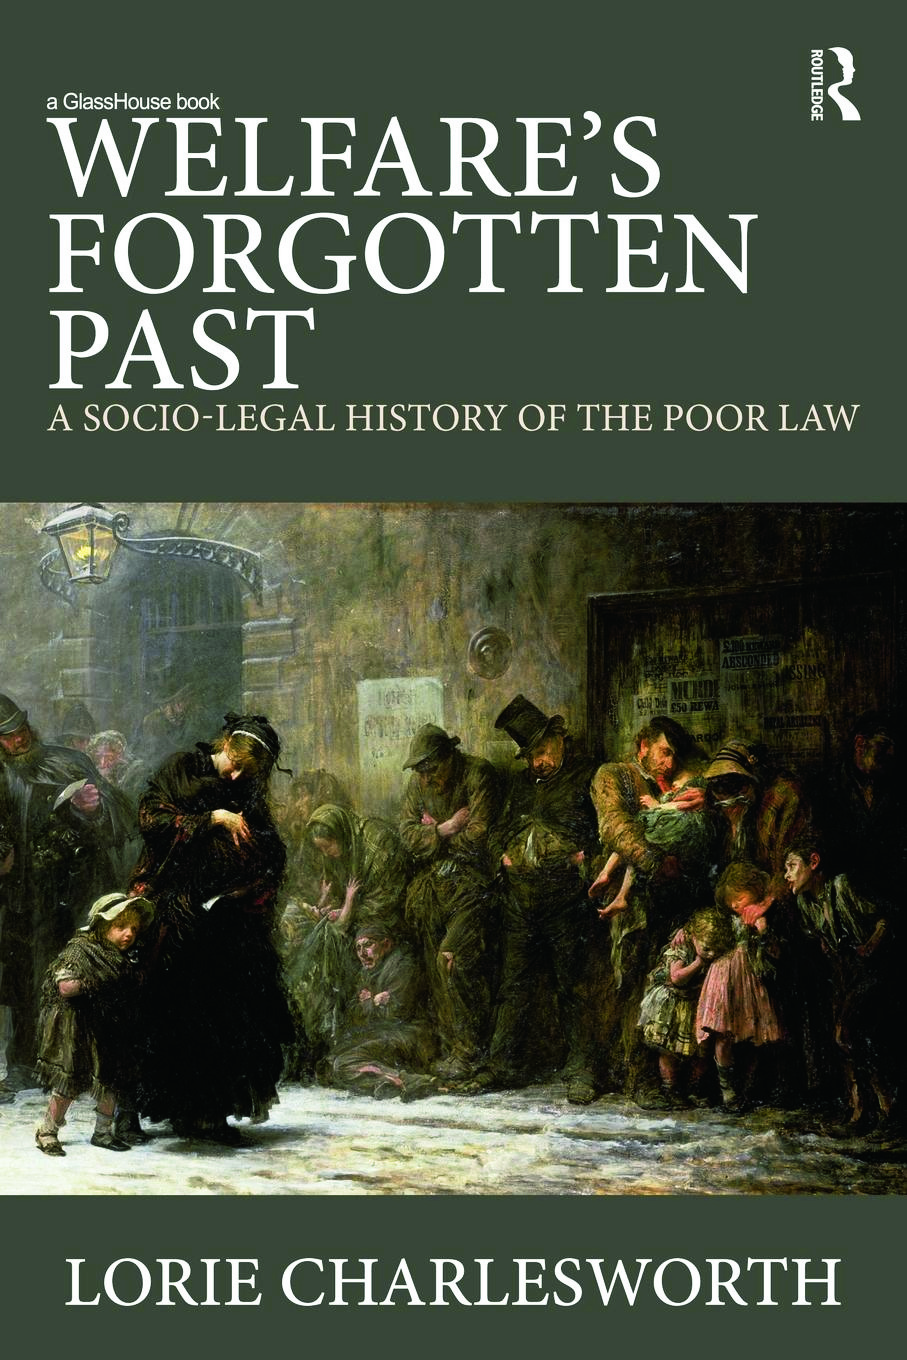 Welfare's Forgotten Past: A Socio-Legal History of the Poor Law (Paperback) book cover